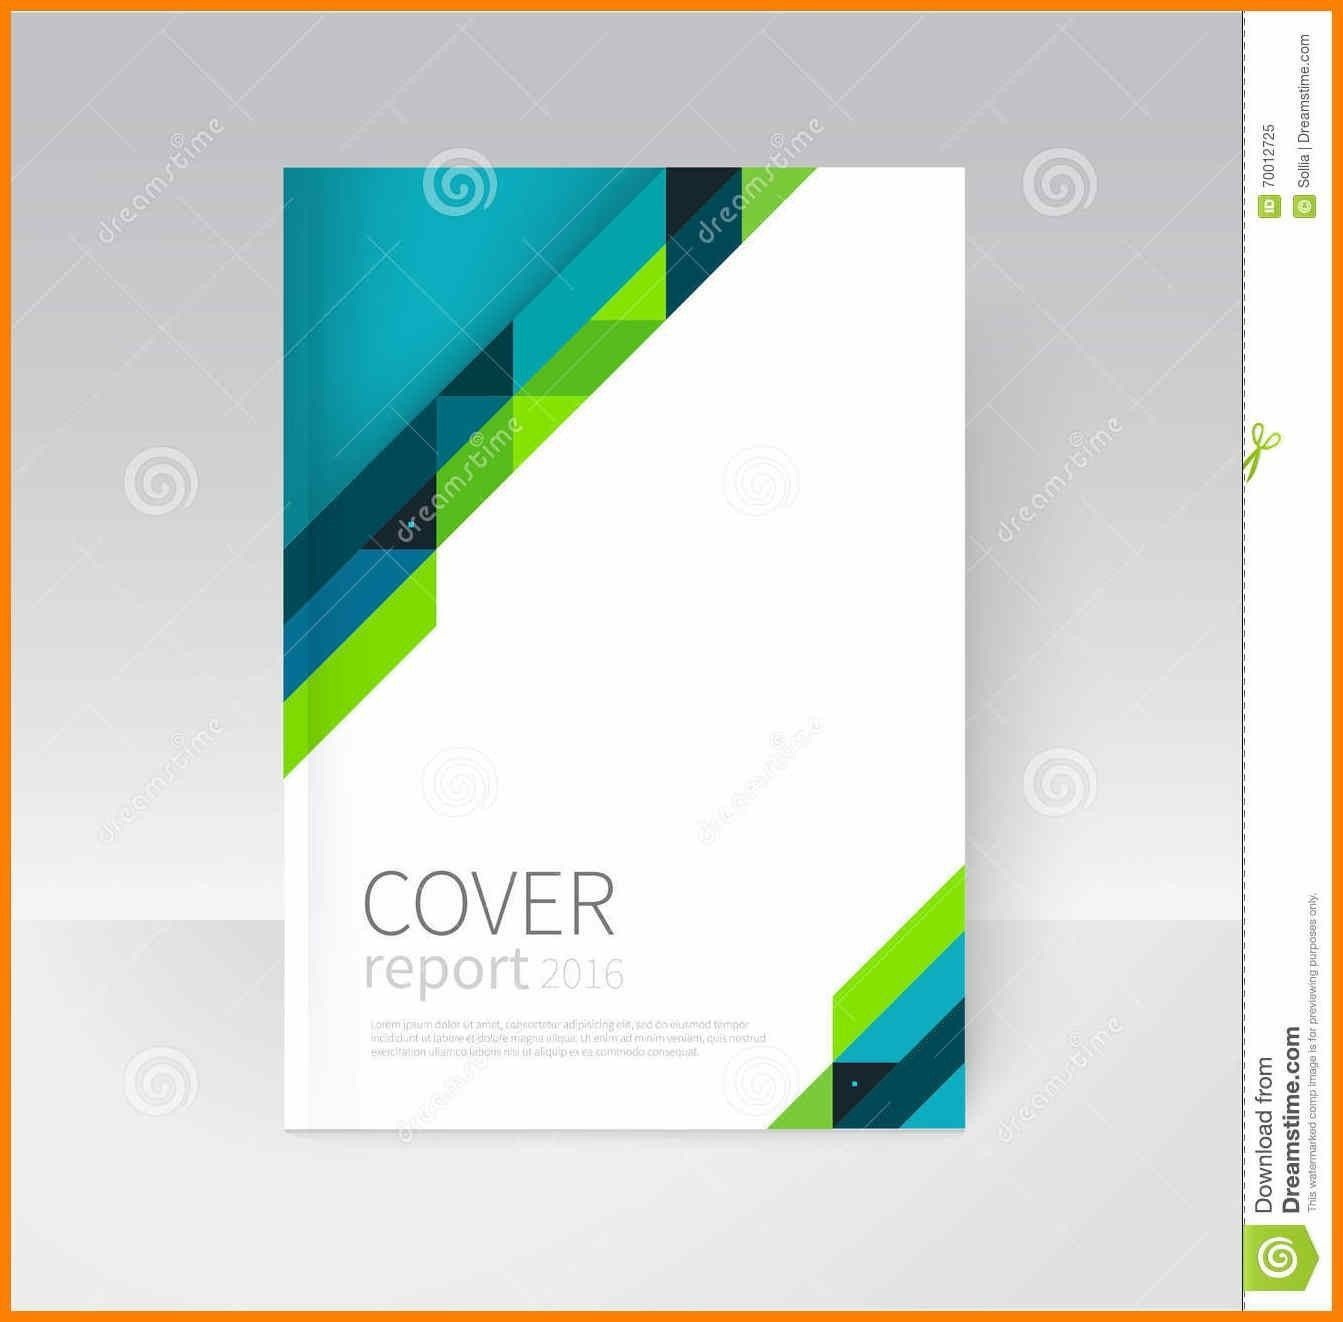 009 Rare M Word Page Template Free Download Sample  Cover Design 2007 BookFull